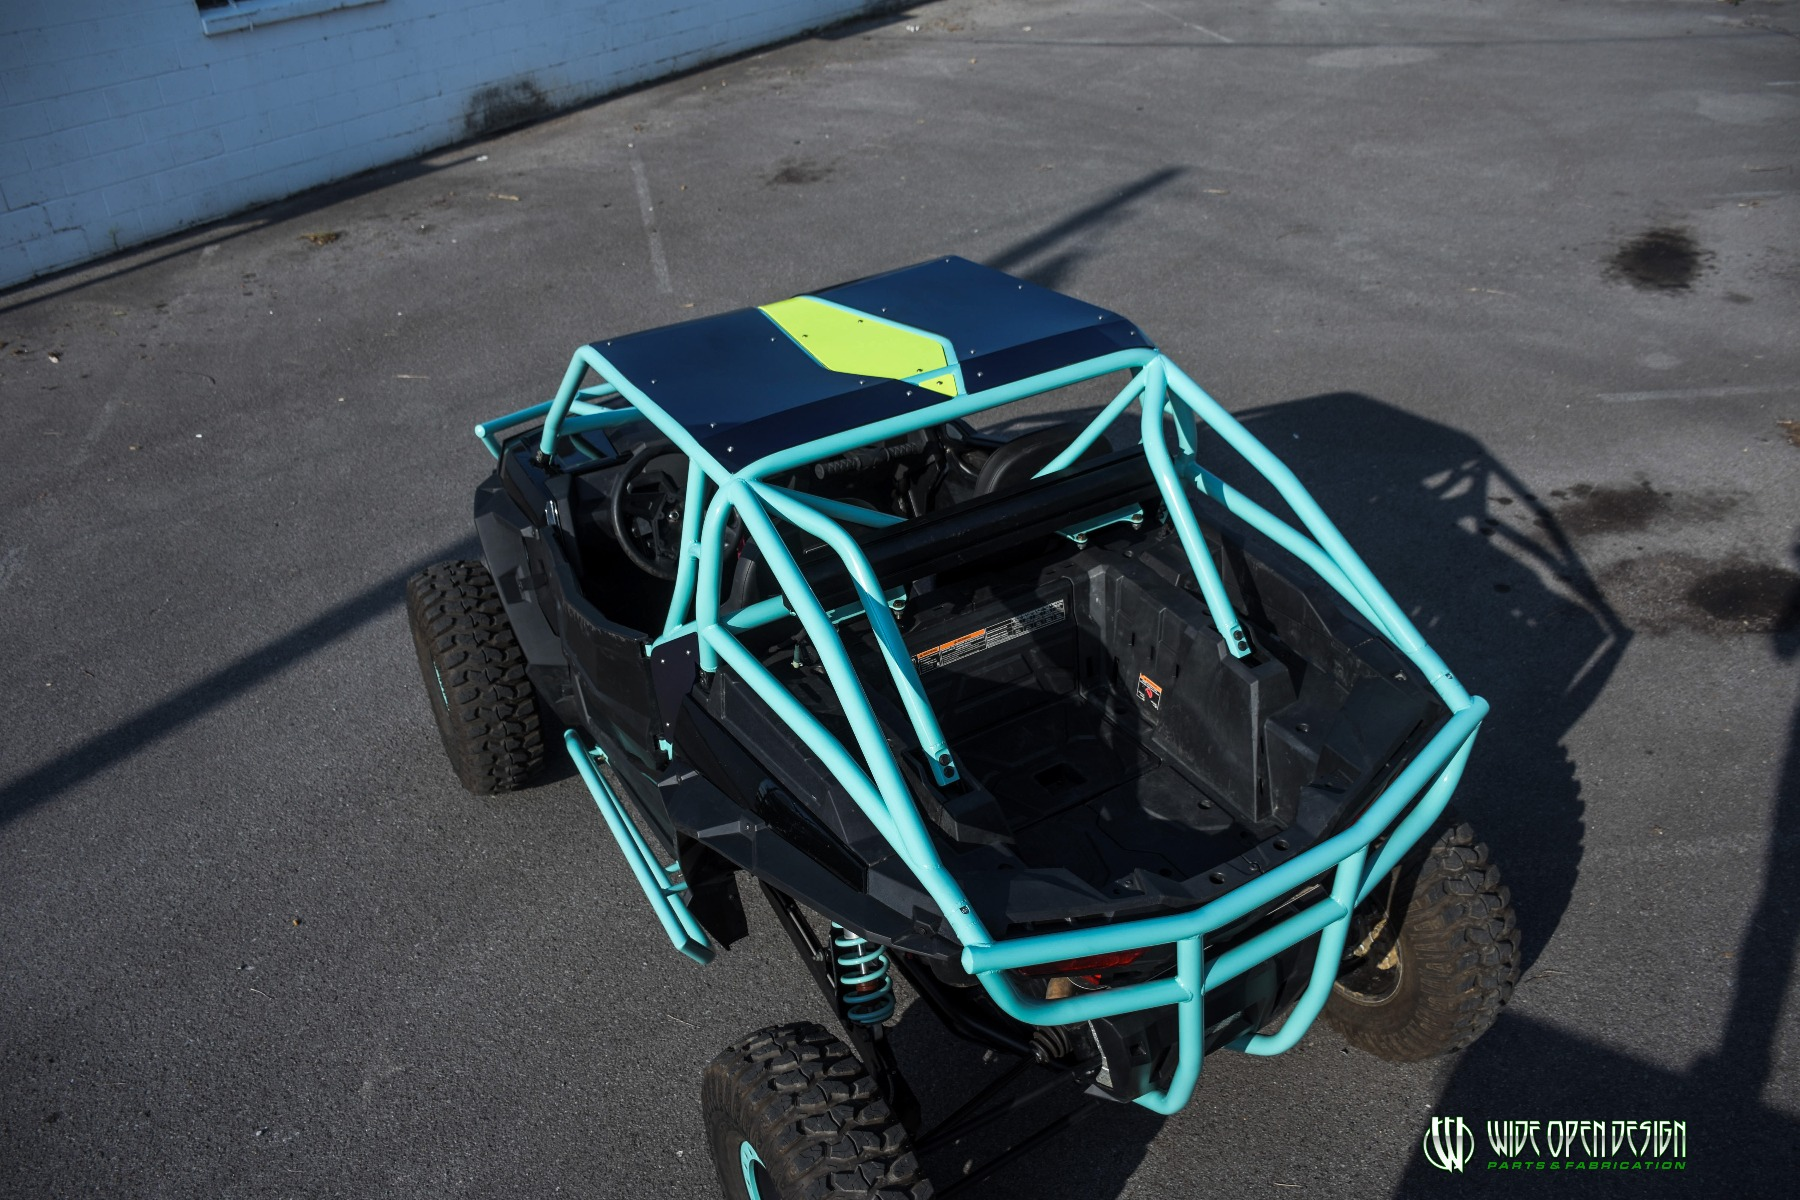 Wide Open Design UTV Cage RZR Cage Double Down featuring Double Pillars 25